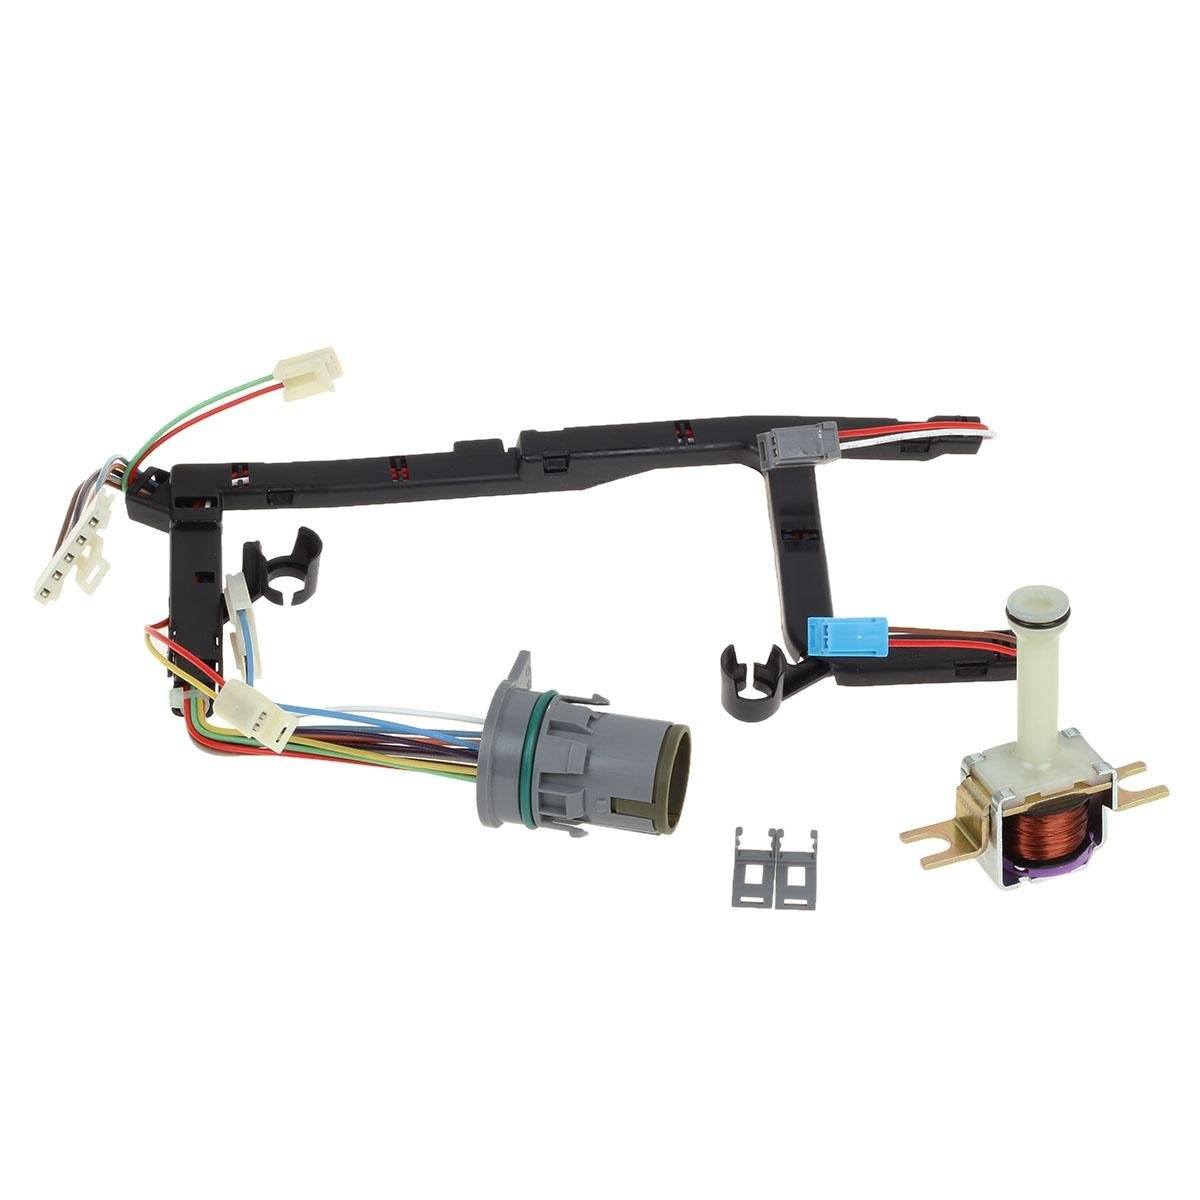 universal 4l60e transmission solenoid internal wire harness with tcc for 1993 2002 gm in wire from automobiles motorcycles on aliexpress com alibaba  [ 1200 x 1200 Pixel ]